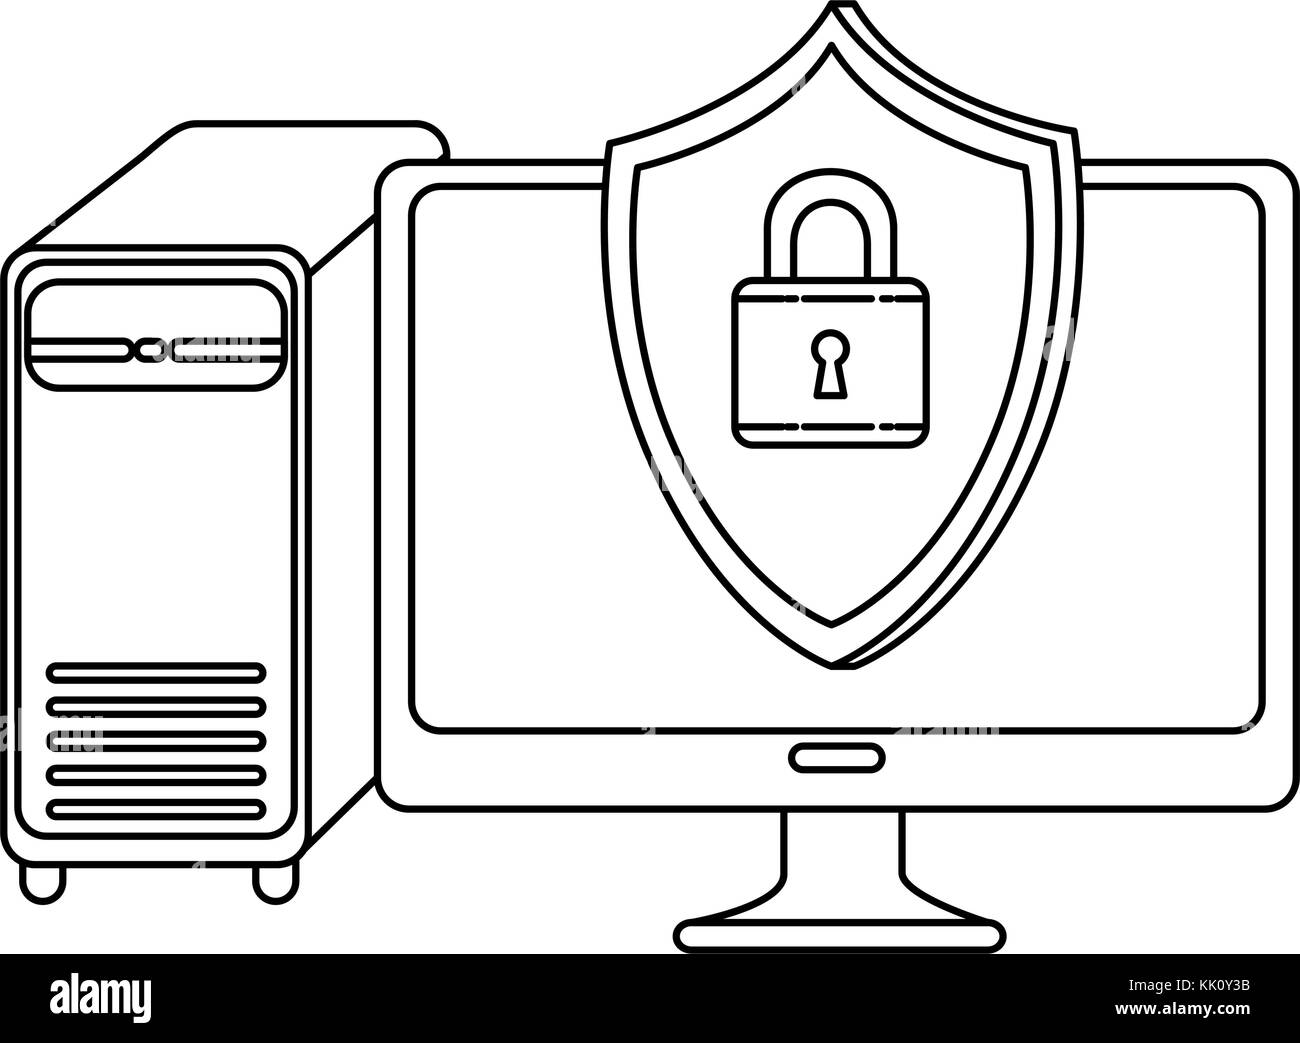 desktop computer with shield - Stock Image